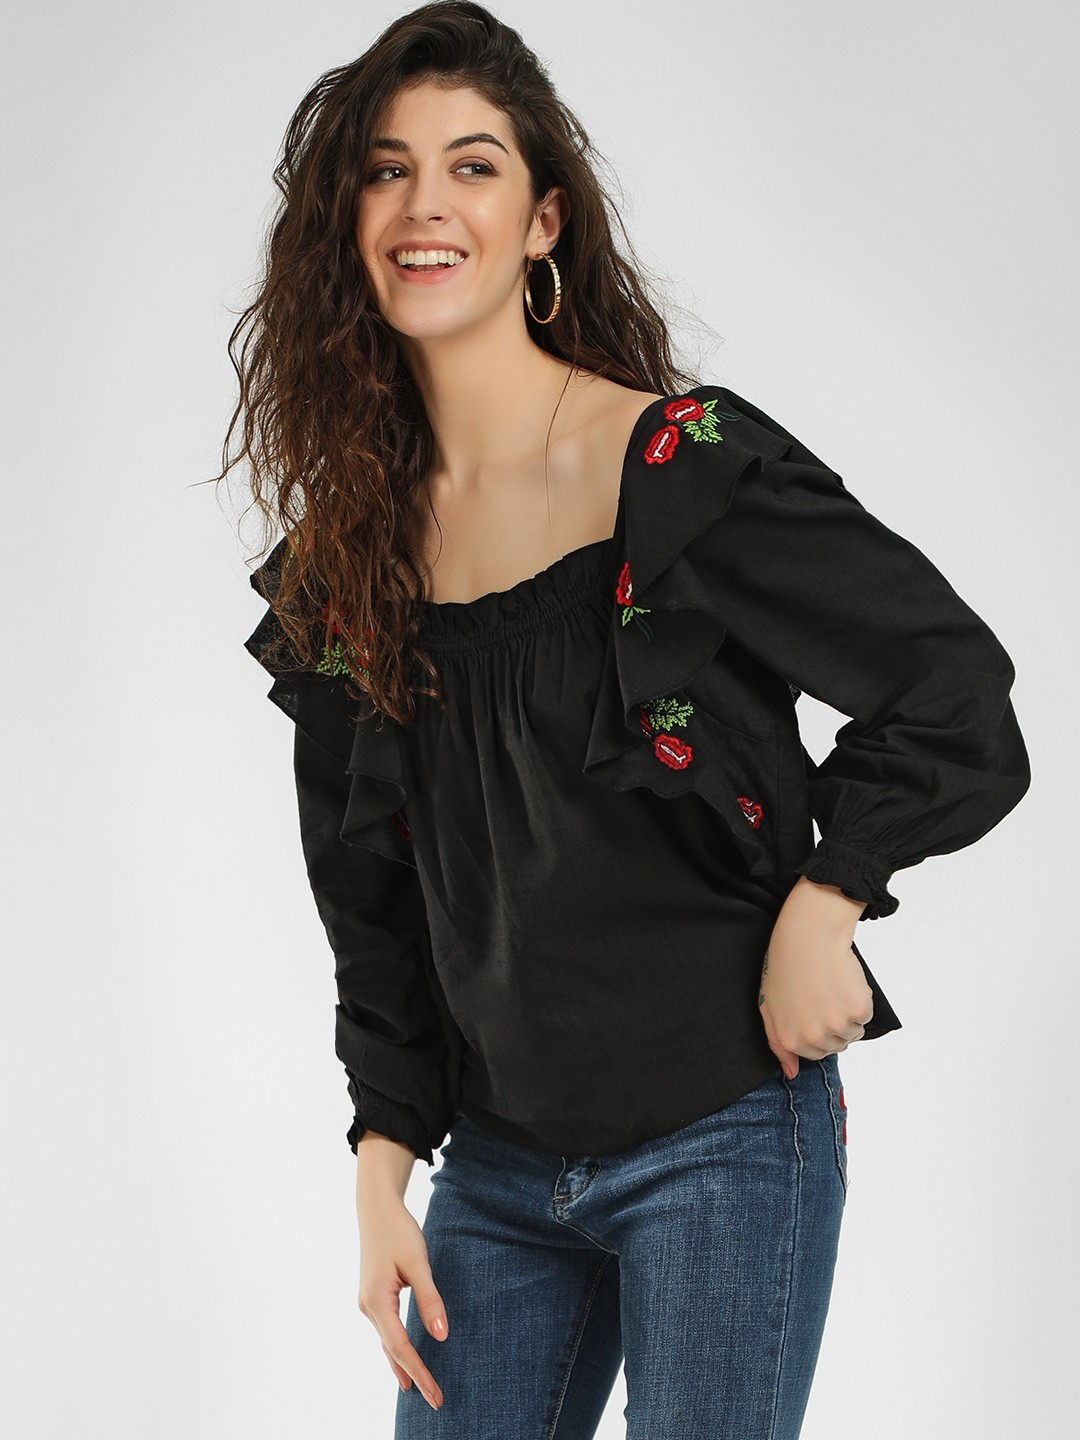 Sbuys Black Ruffle Sleeves Embroidered Blouse 1